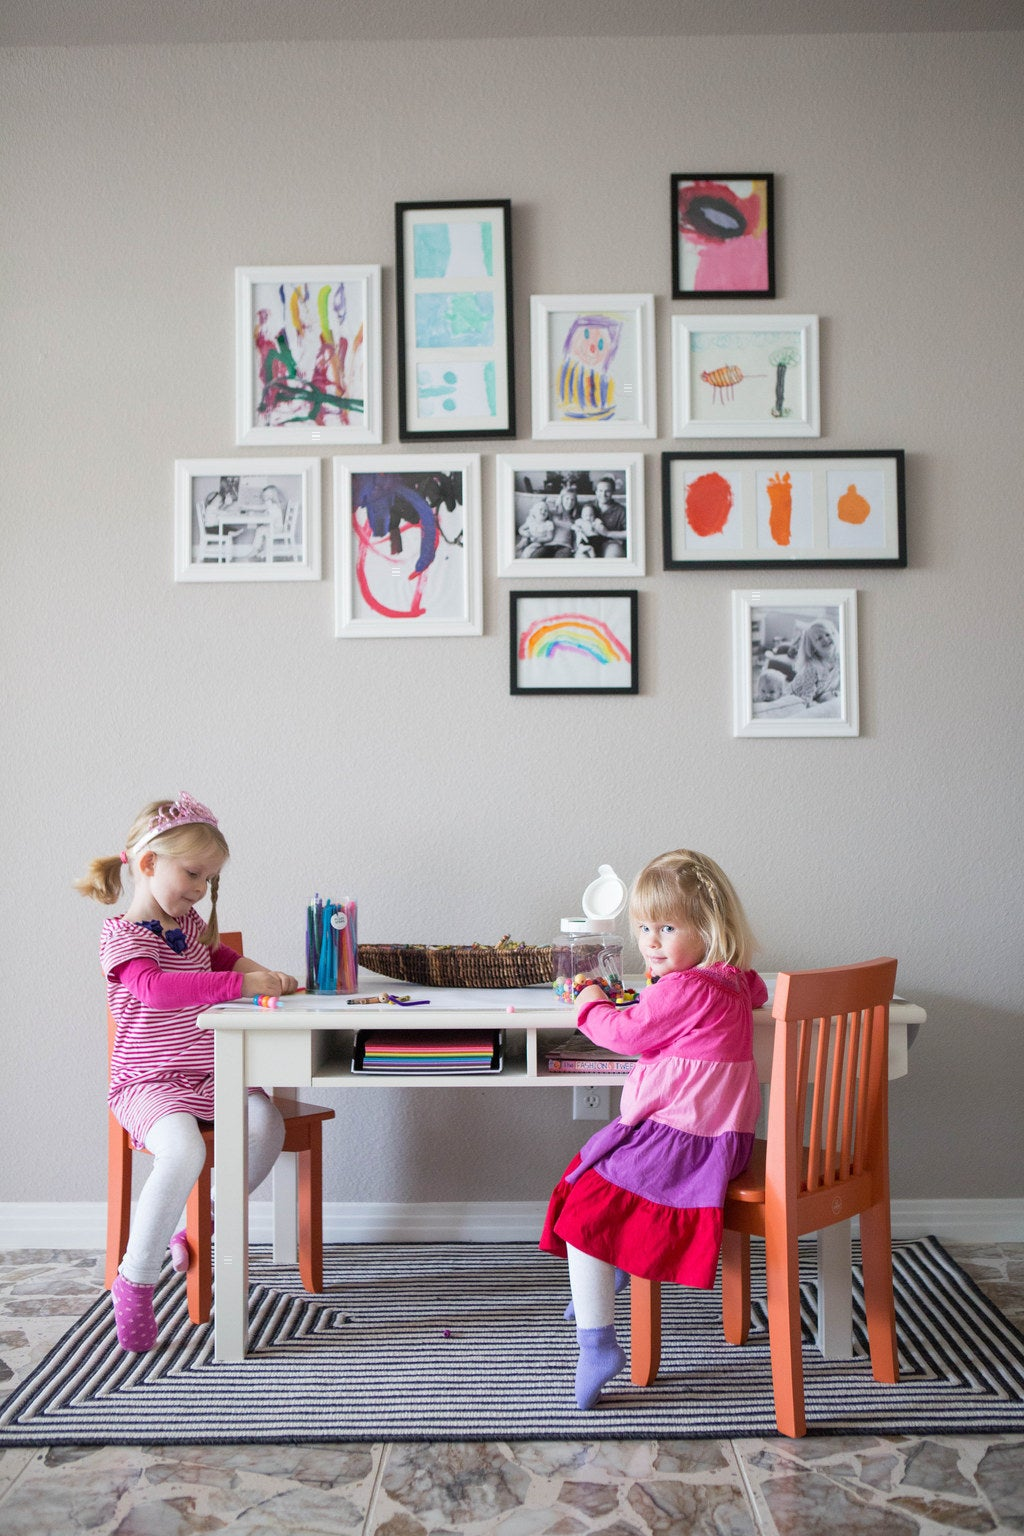 28 Charming Ways To Use Your Kids 39 Art As Decor